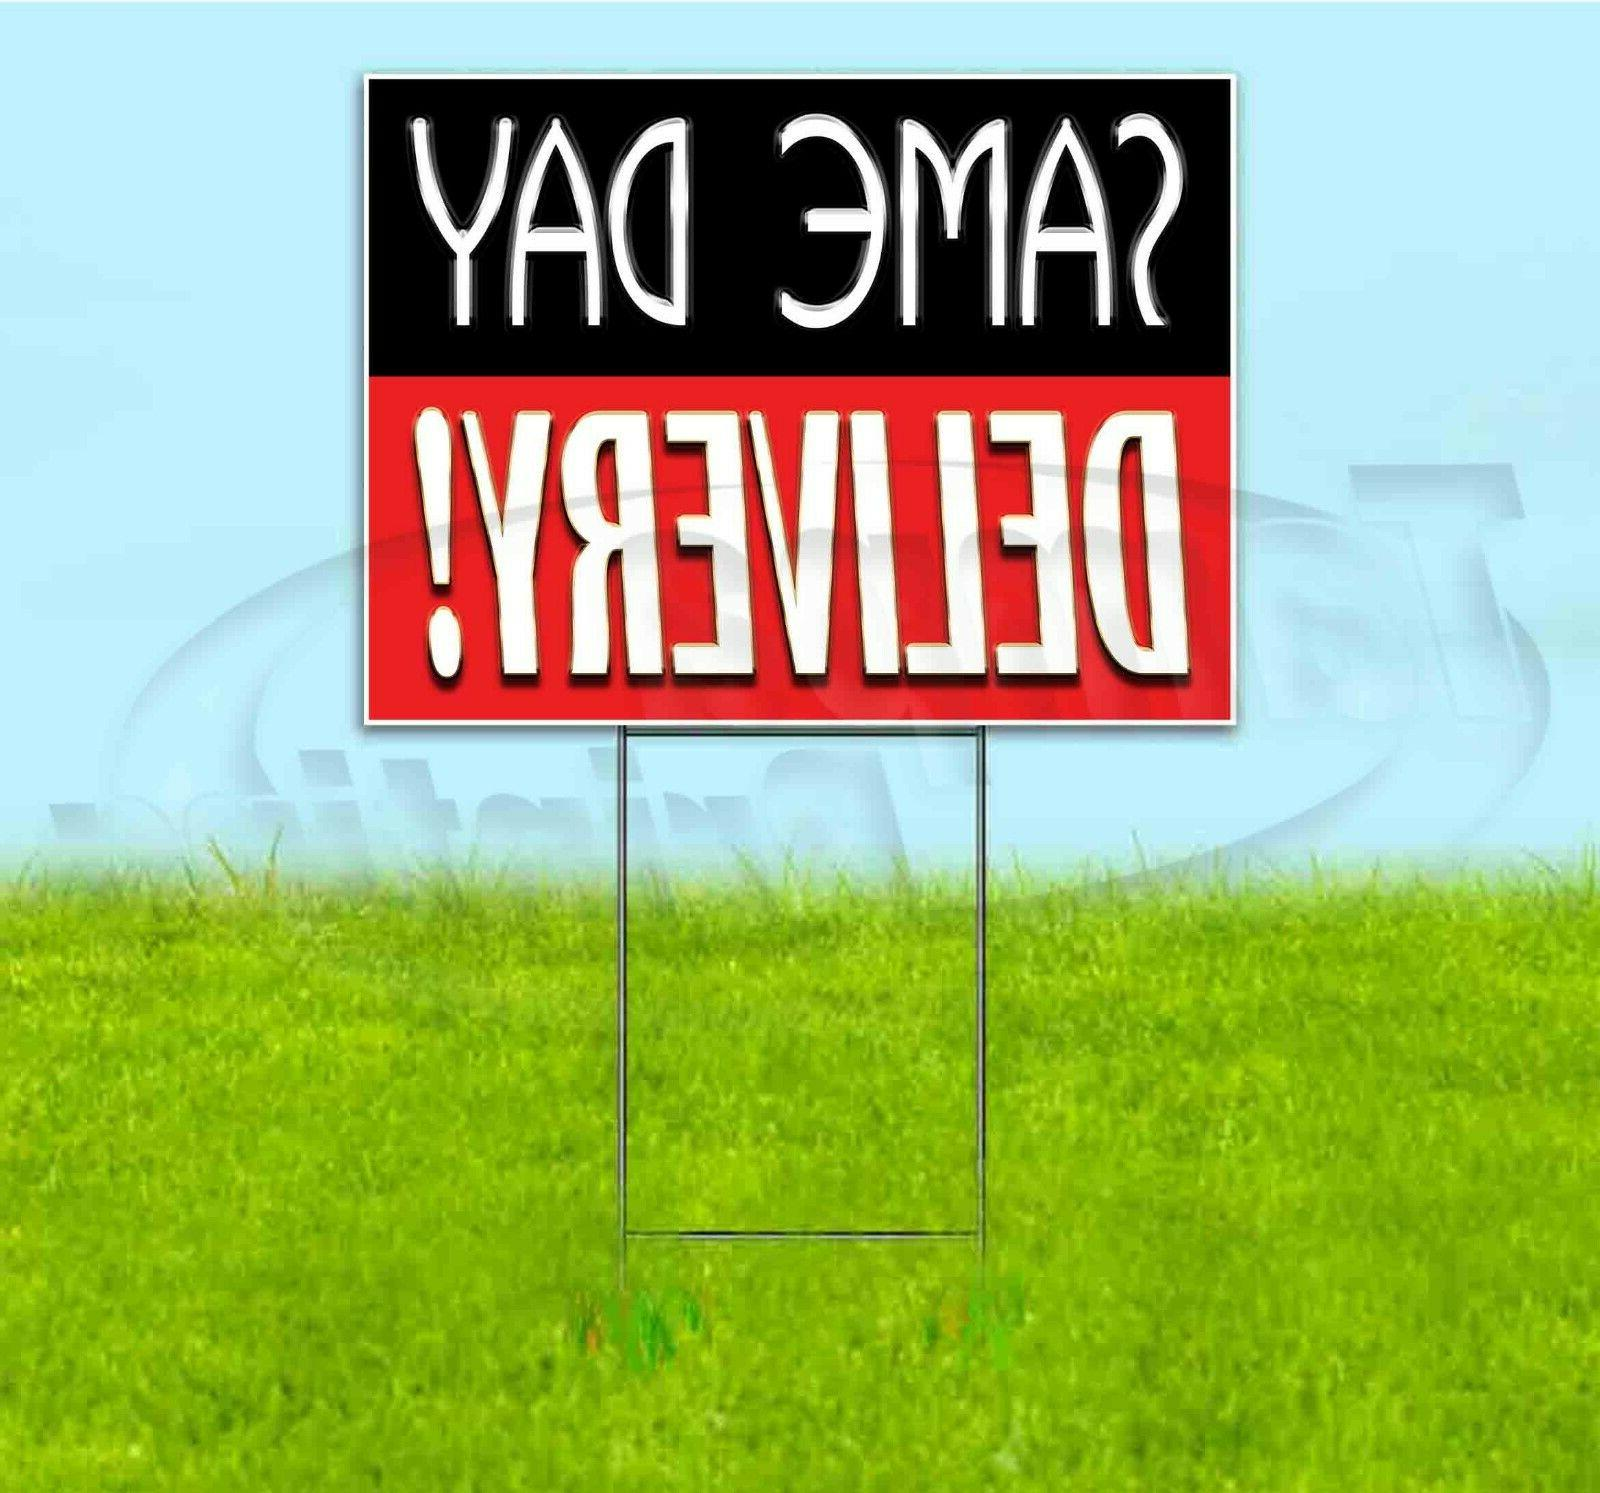 same day delivery 18x24 yard sign